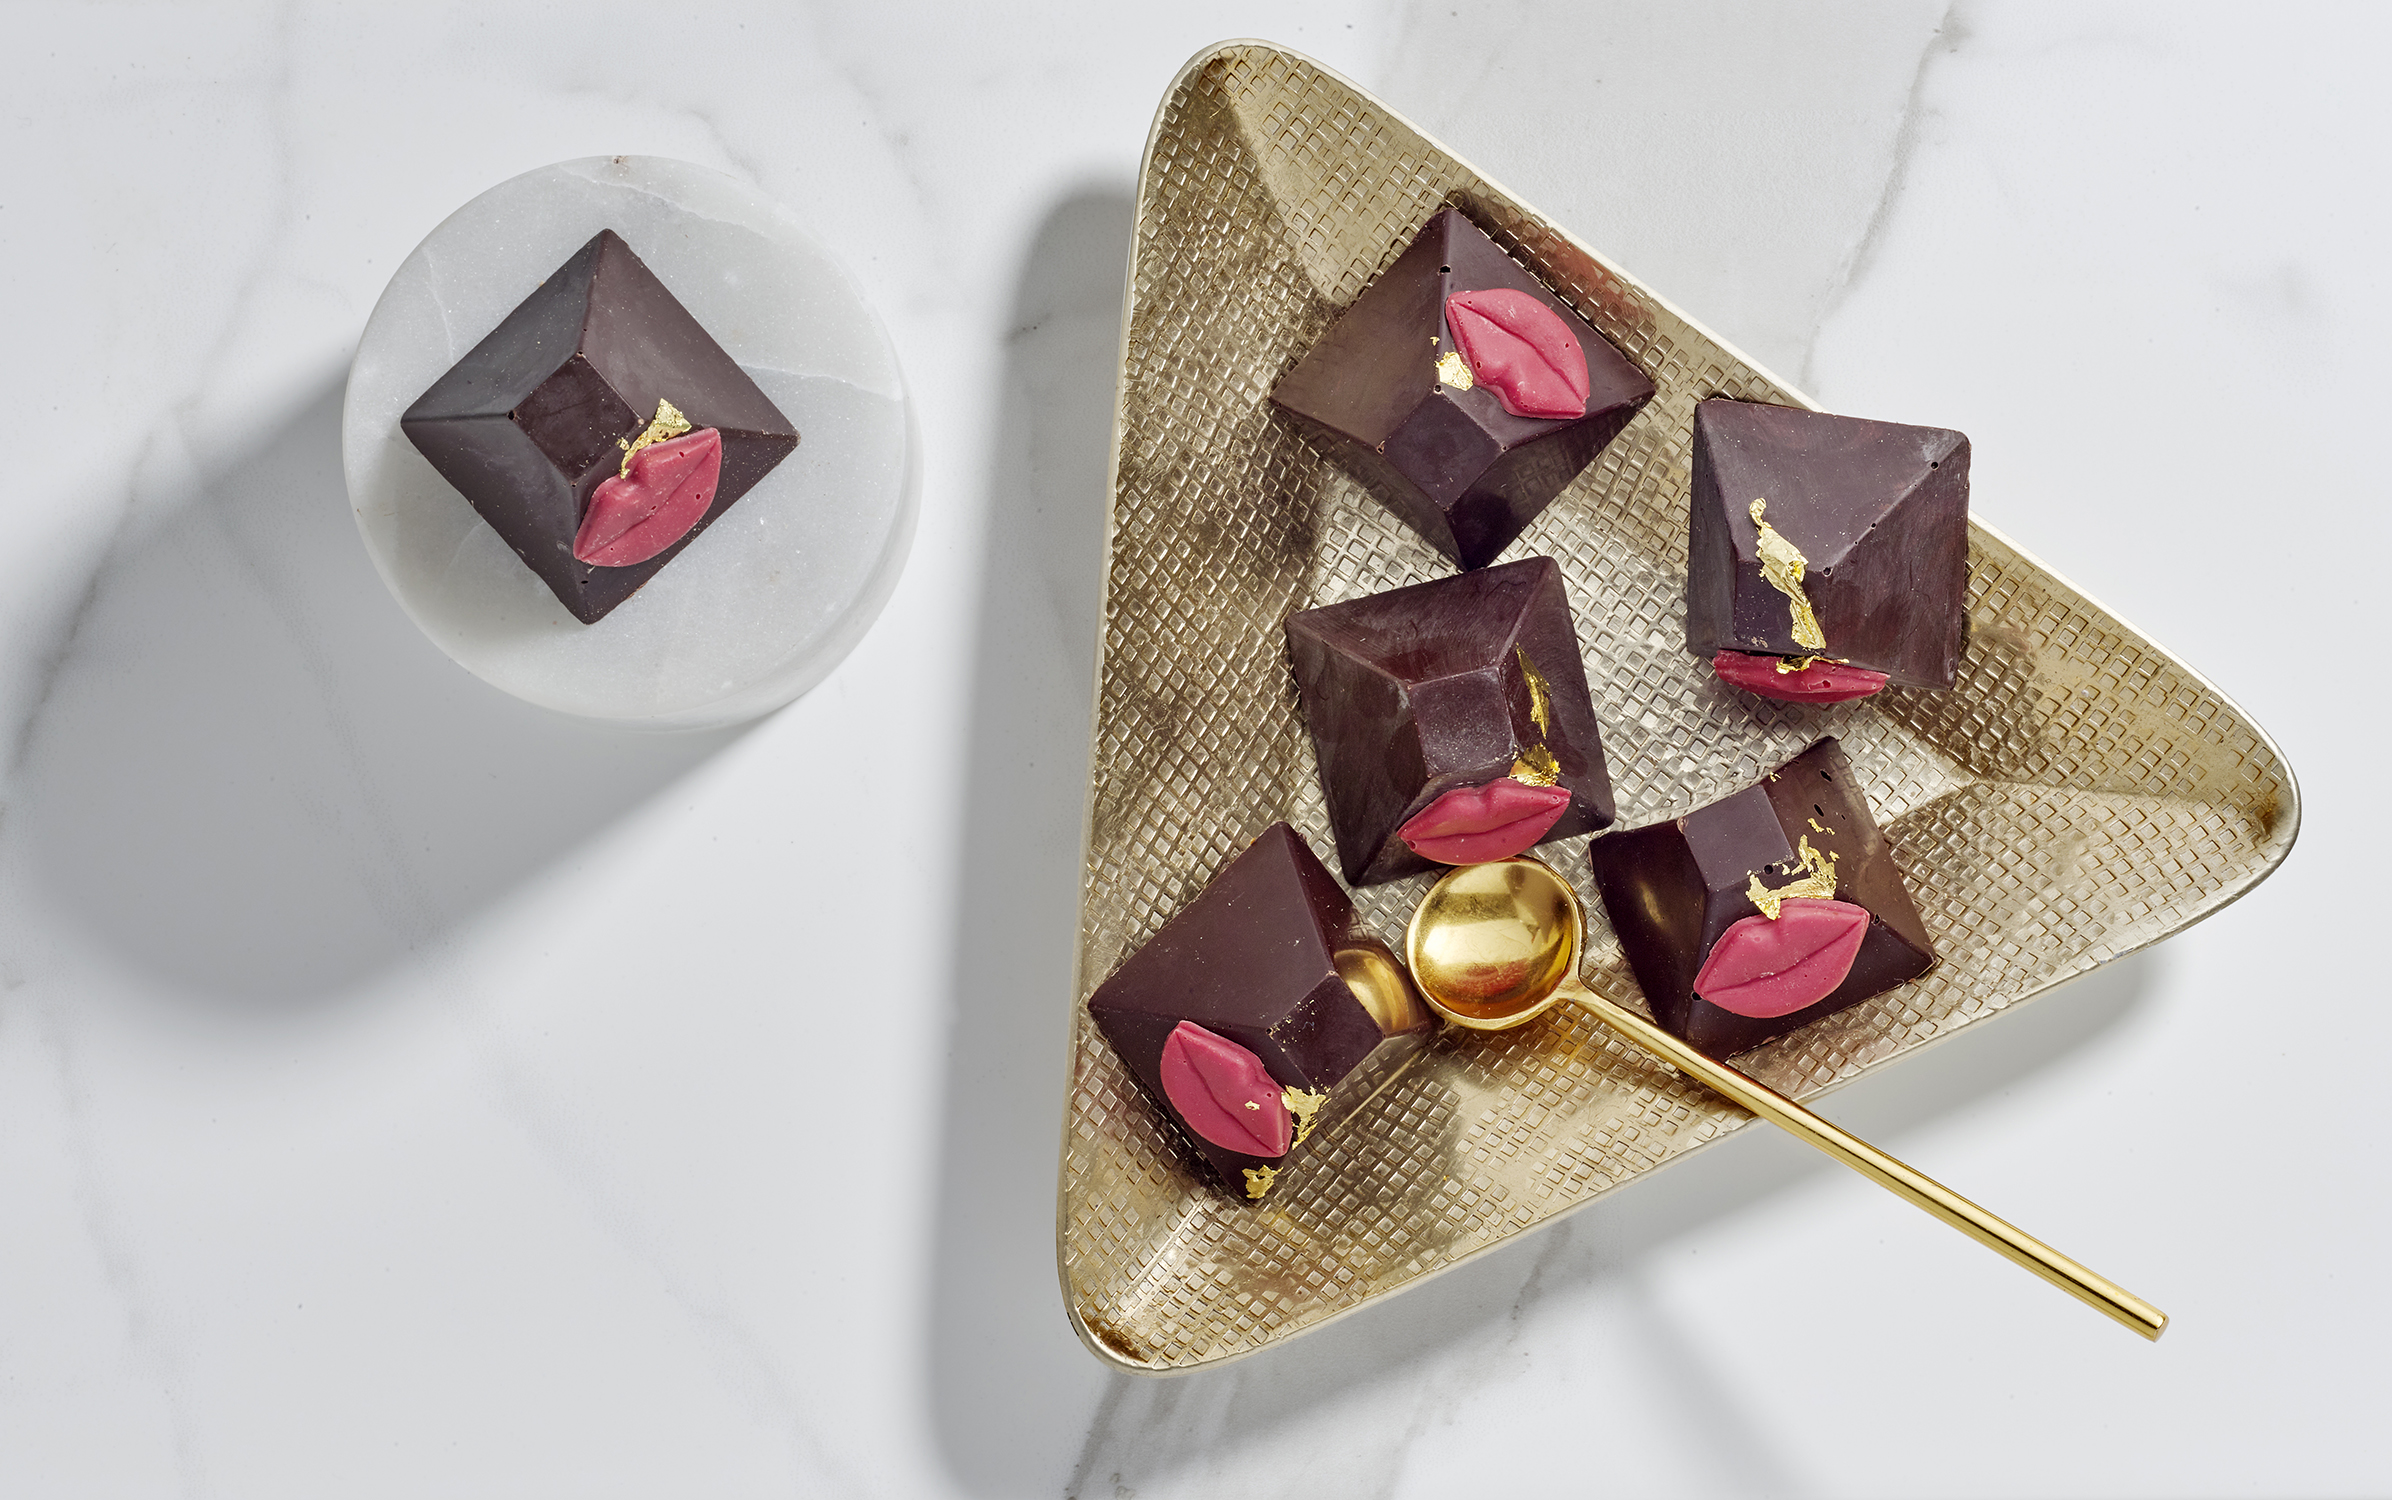 Creative food packshot photography, still life photography - individual chocolate pieces on luxury background product photography in London